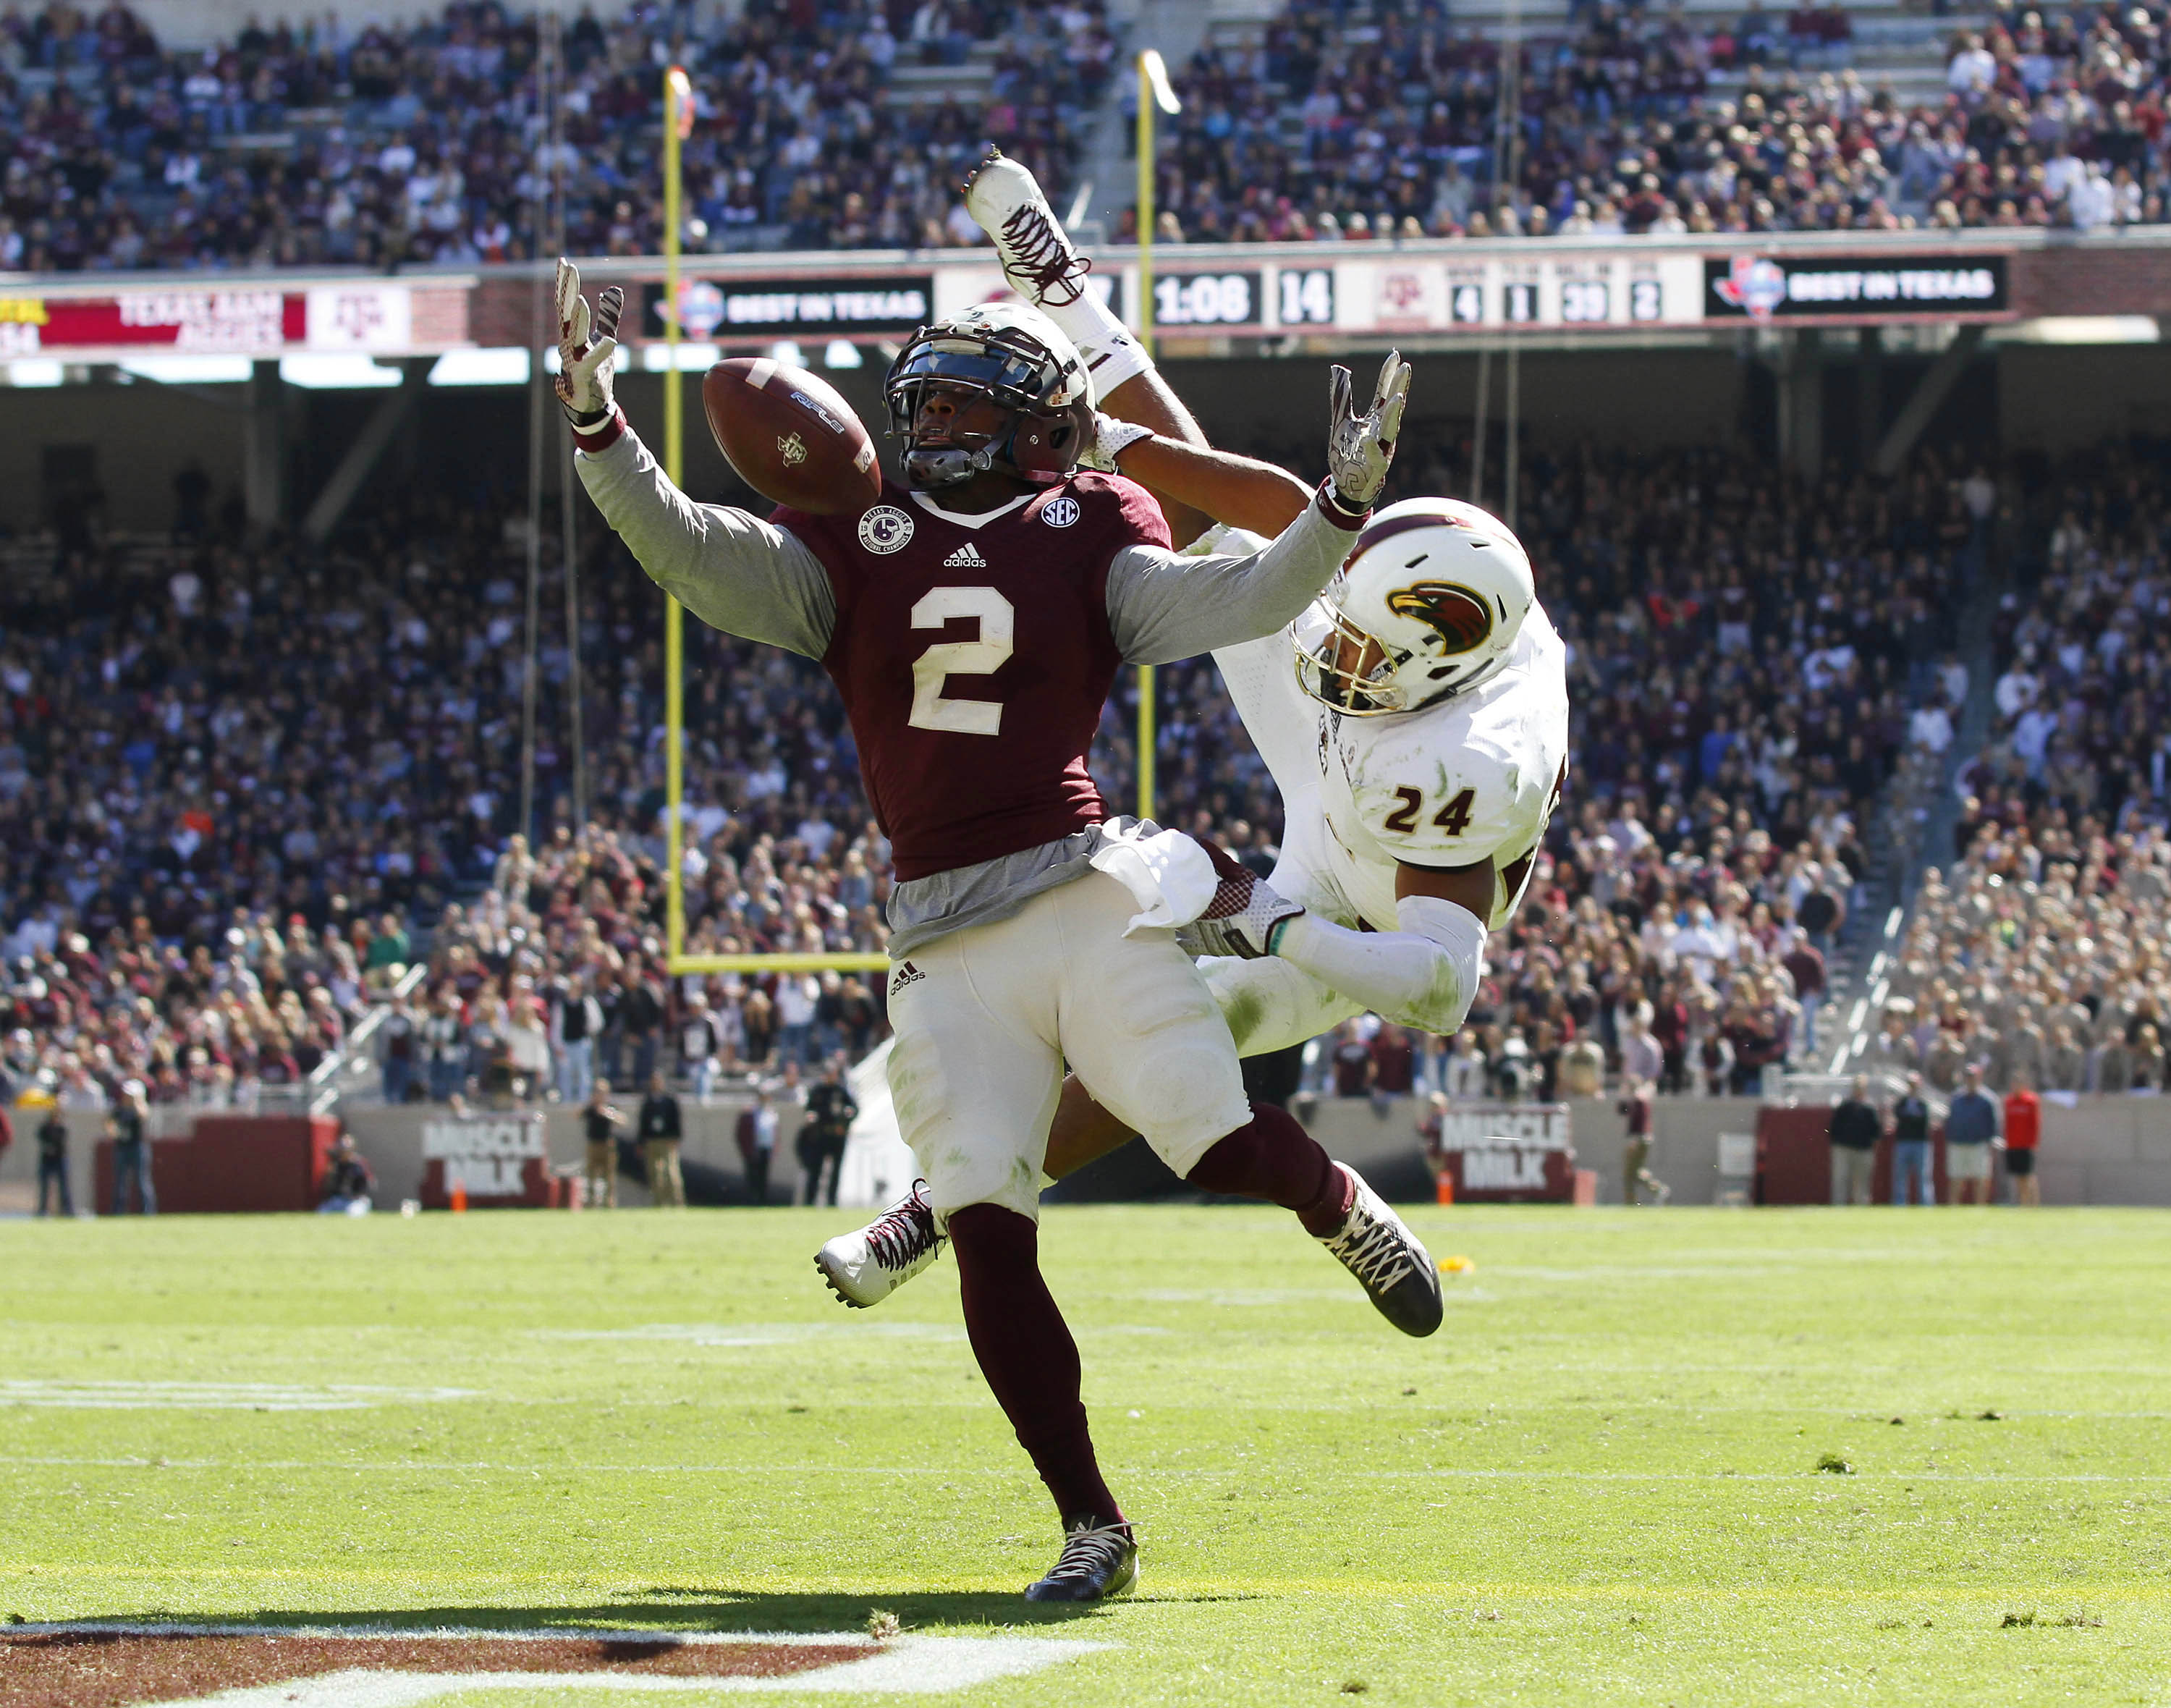 Nov 1, 2014; College Station, TX, USA; Texas A&M Aggies wide receiver Speedy Noil (2) makes the 39-yard touchdown catch as Louisiana Monroe Warhawks cornerback Trey Caldwell (24) defends on the play during the second quarter at Kyle Field. (Ray Carlin-USA TODAY Sports)